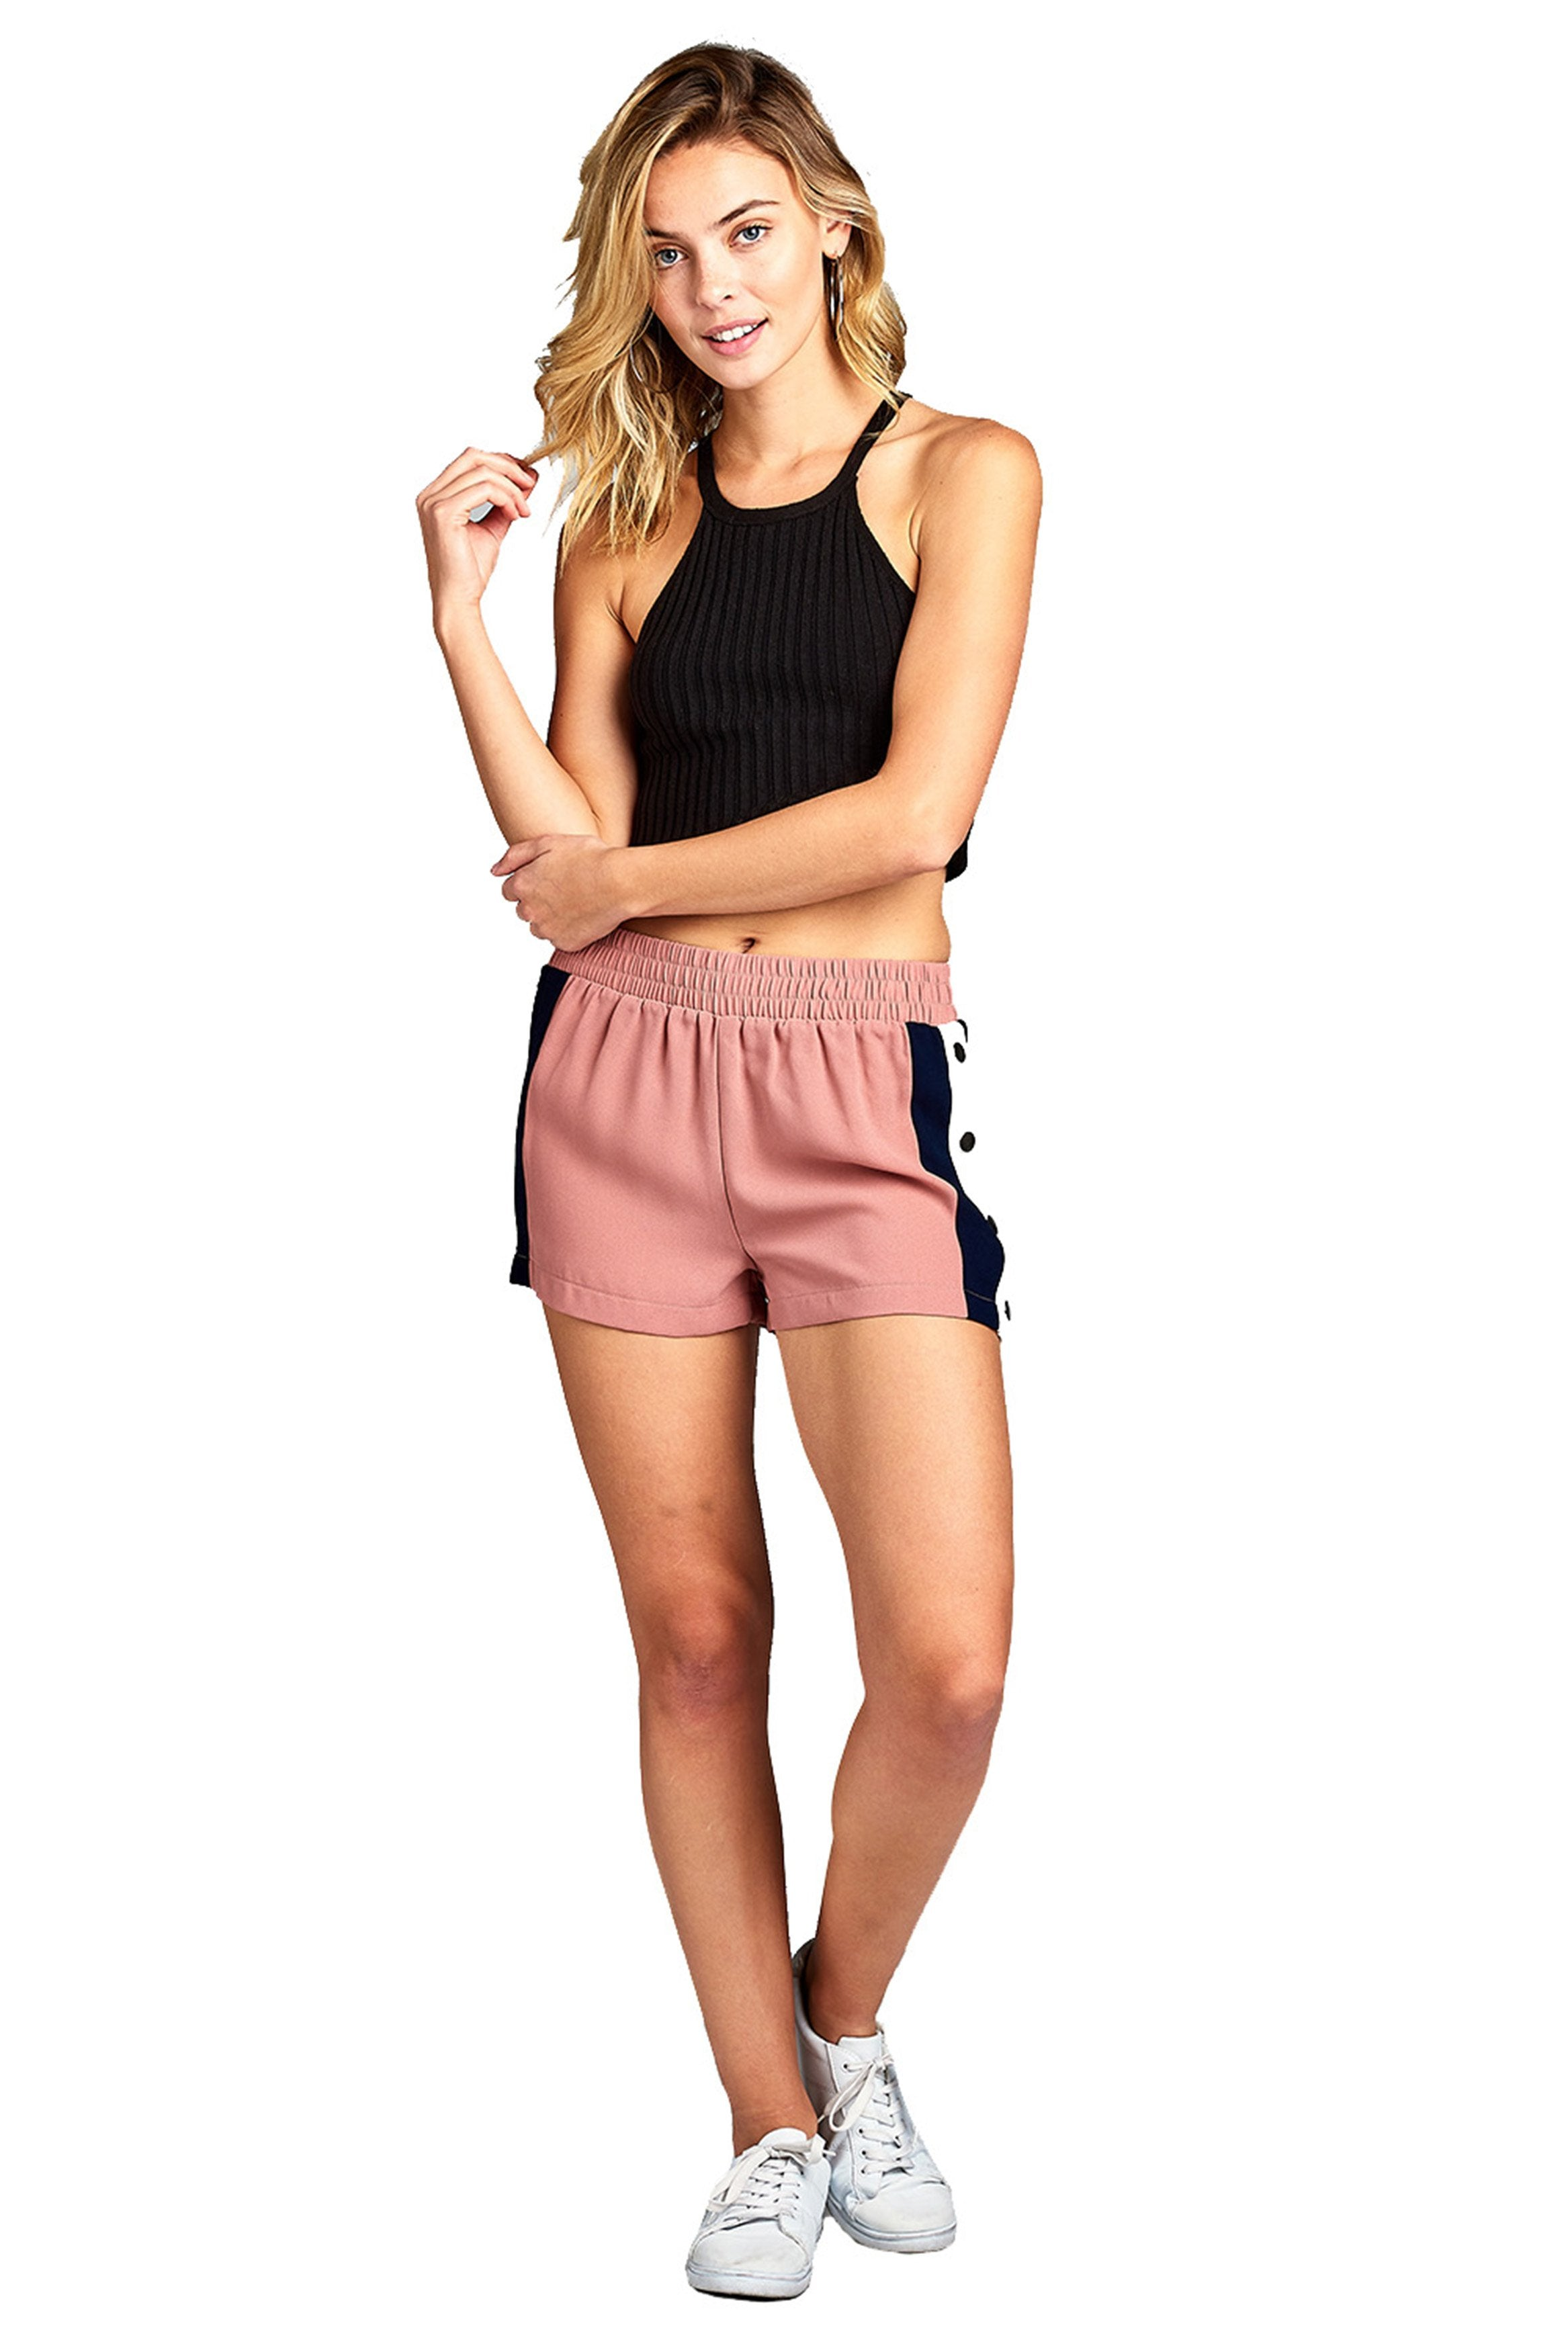 Elastic Waist Snap-On With Side Contrast Button Tearaway light Weight Shorts